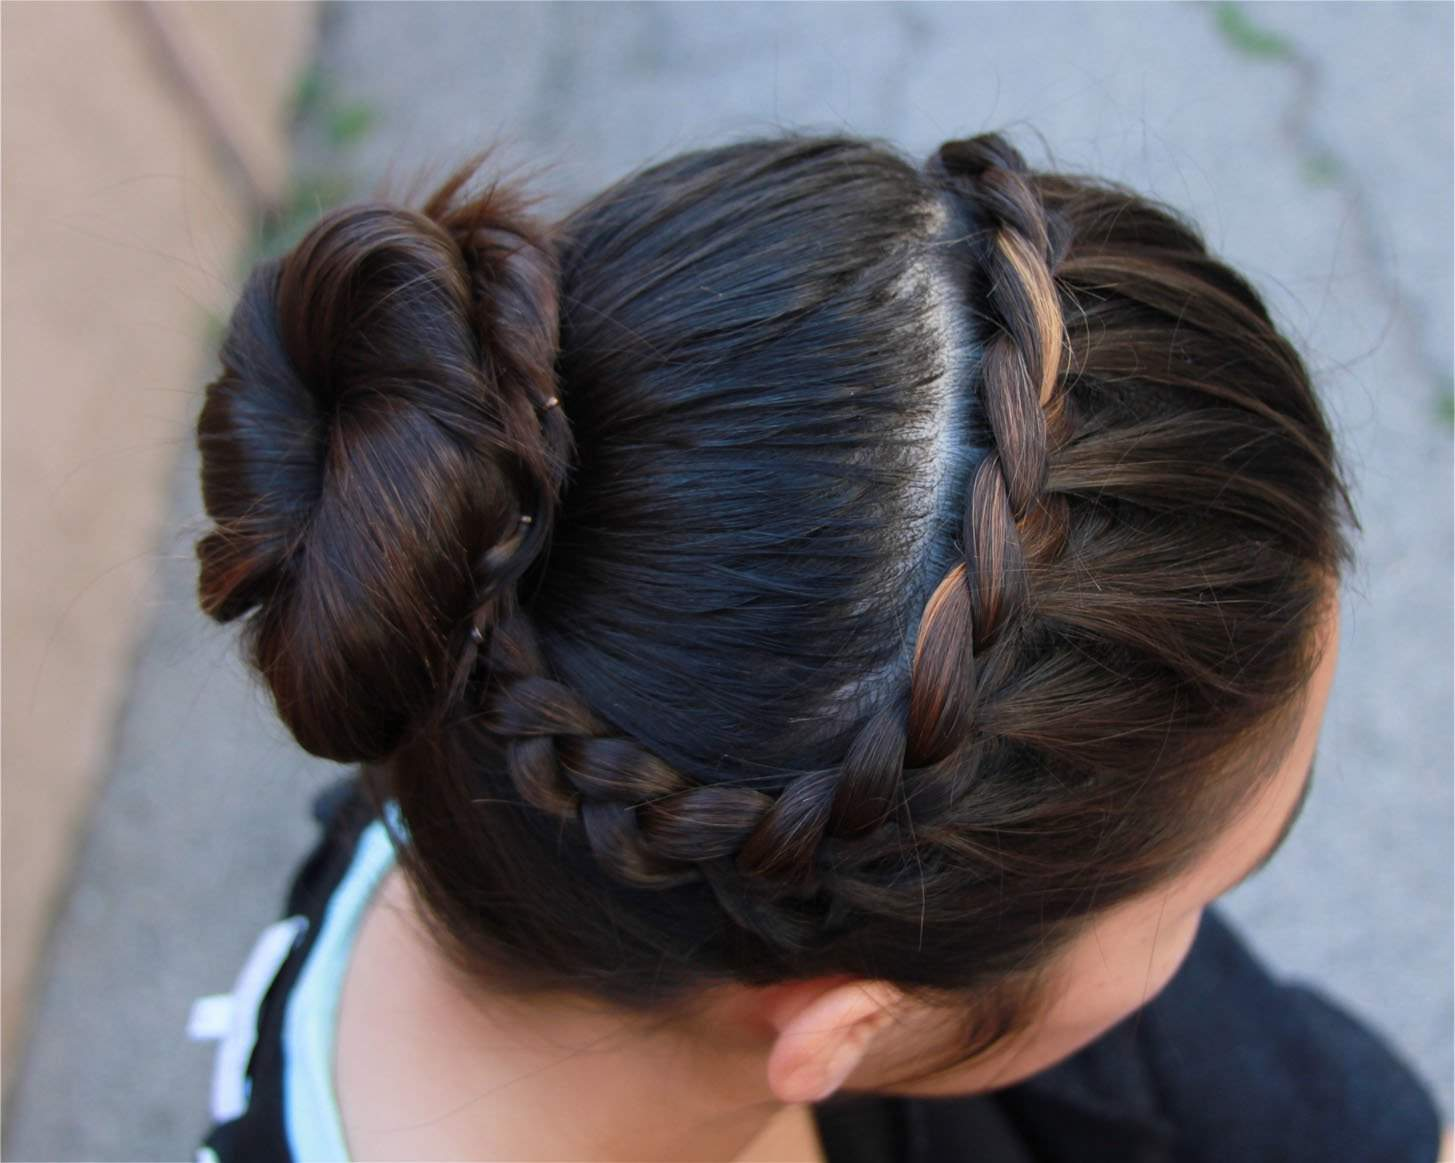 11 Best Braided Hair Images 2017 - Black Girl French Braid Hairstyles